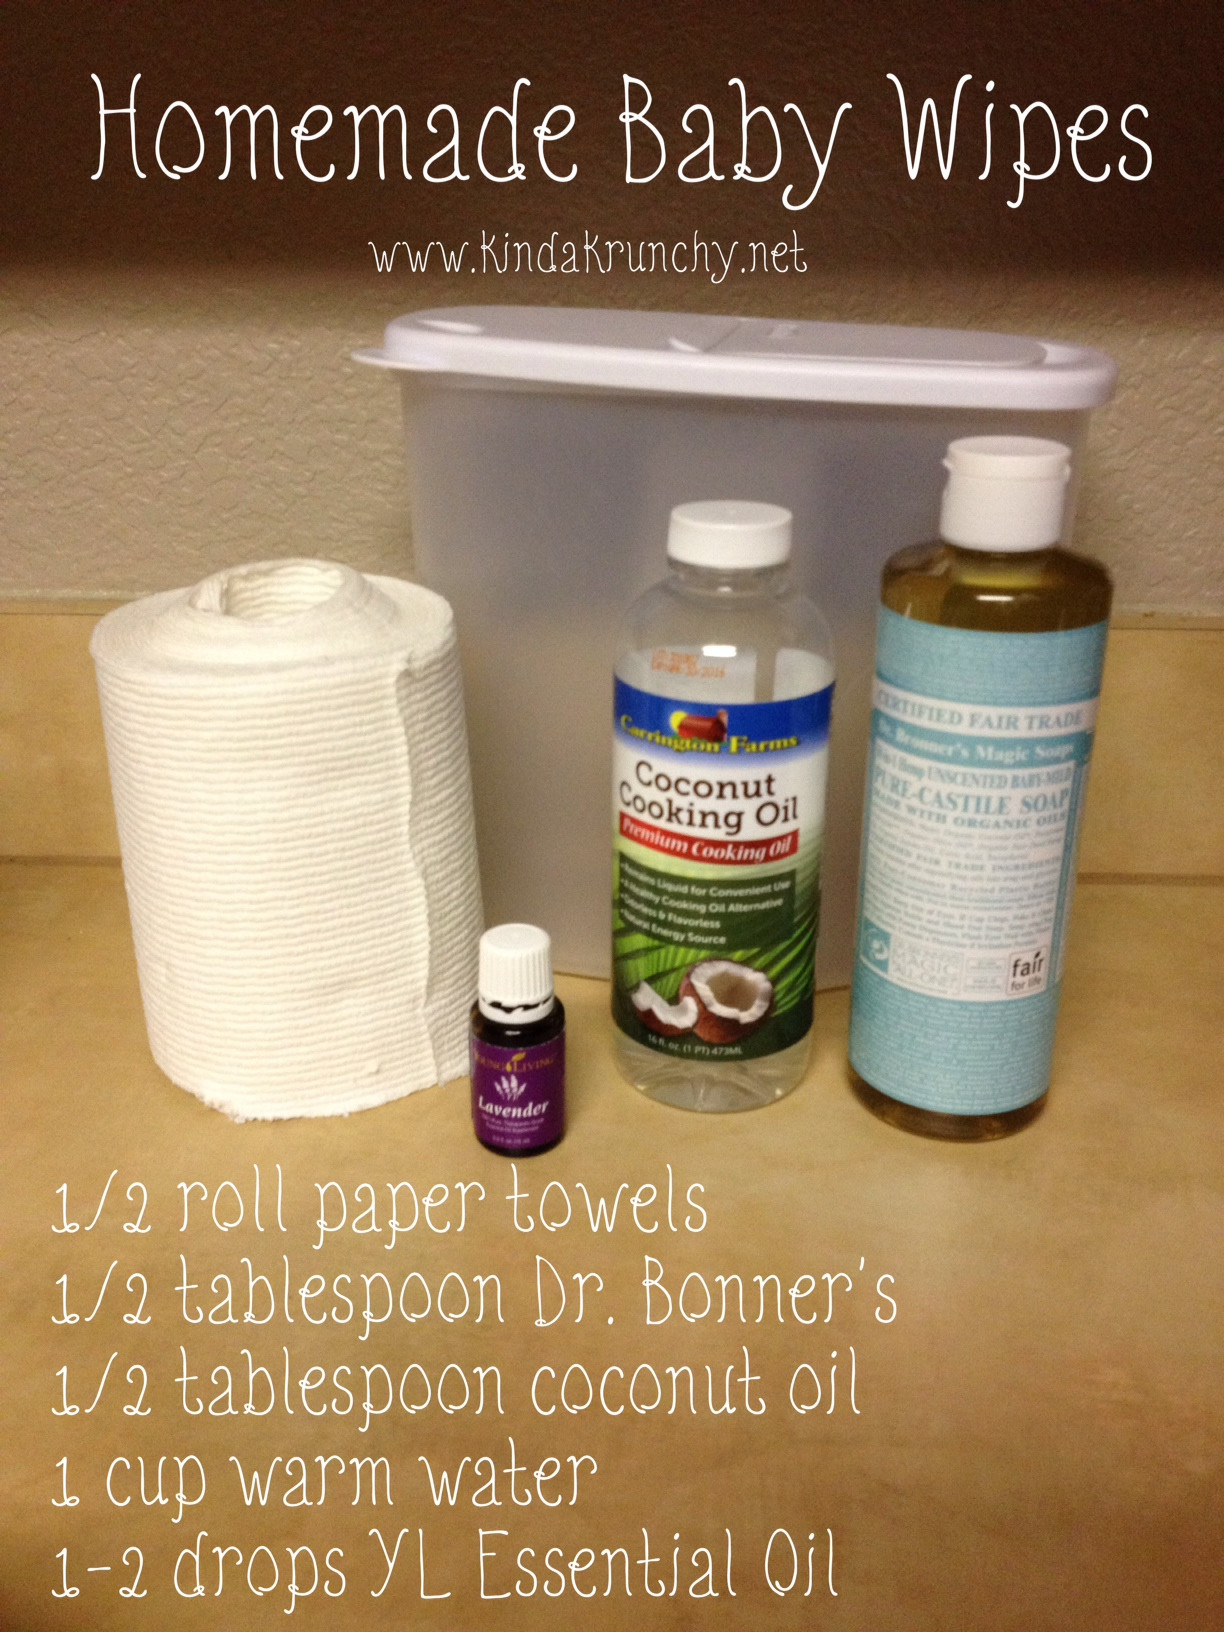 Best ideas about DIY Baby Wipes . Save or Pin Homemade Baby Wipes Now.